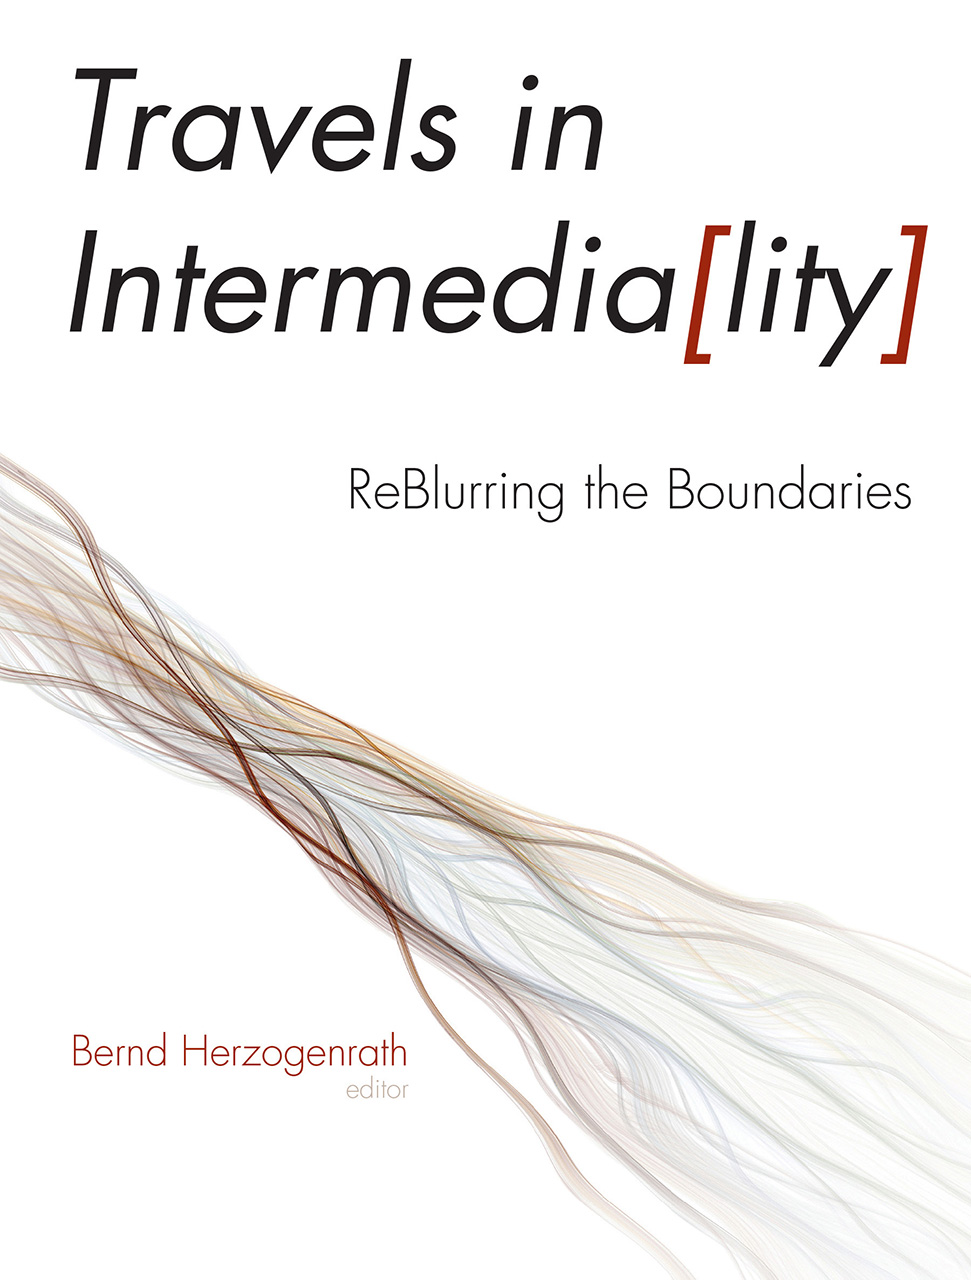 Travels in Intermediality